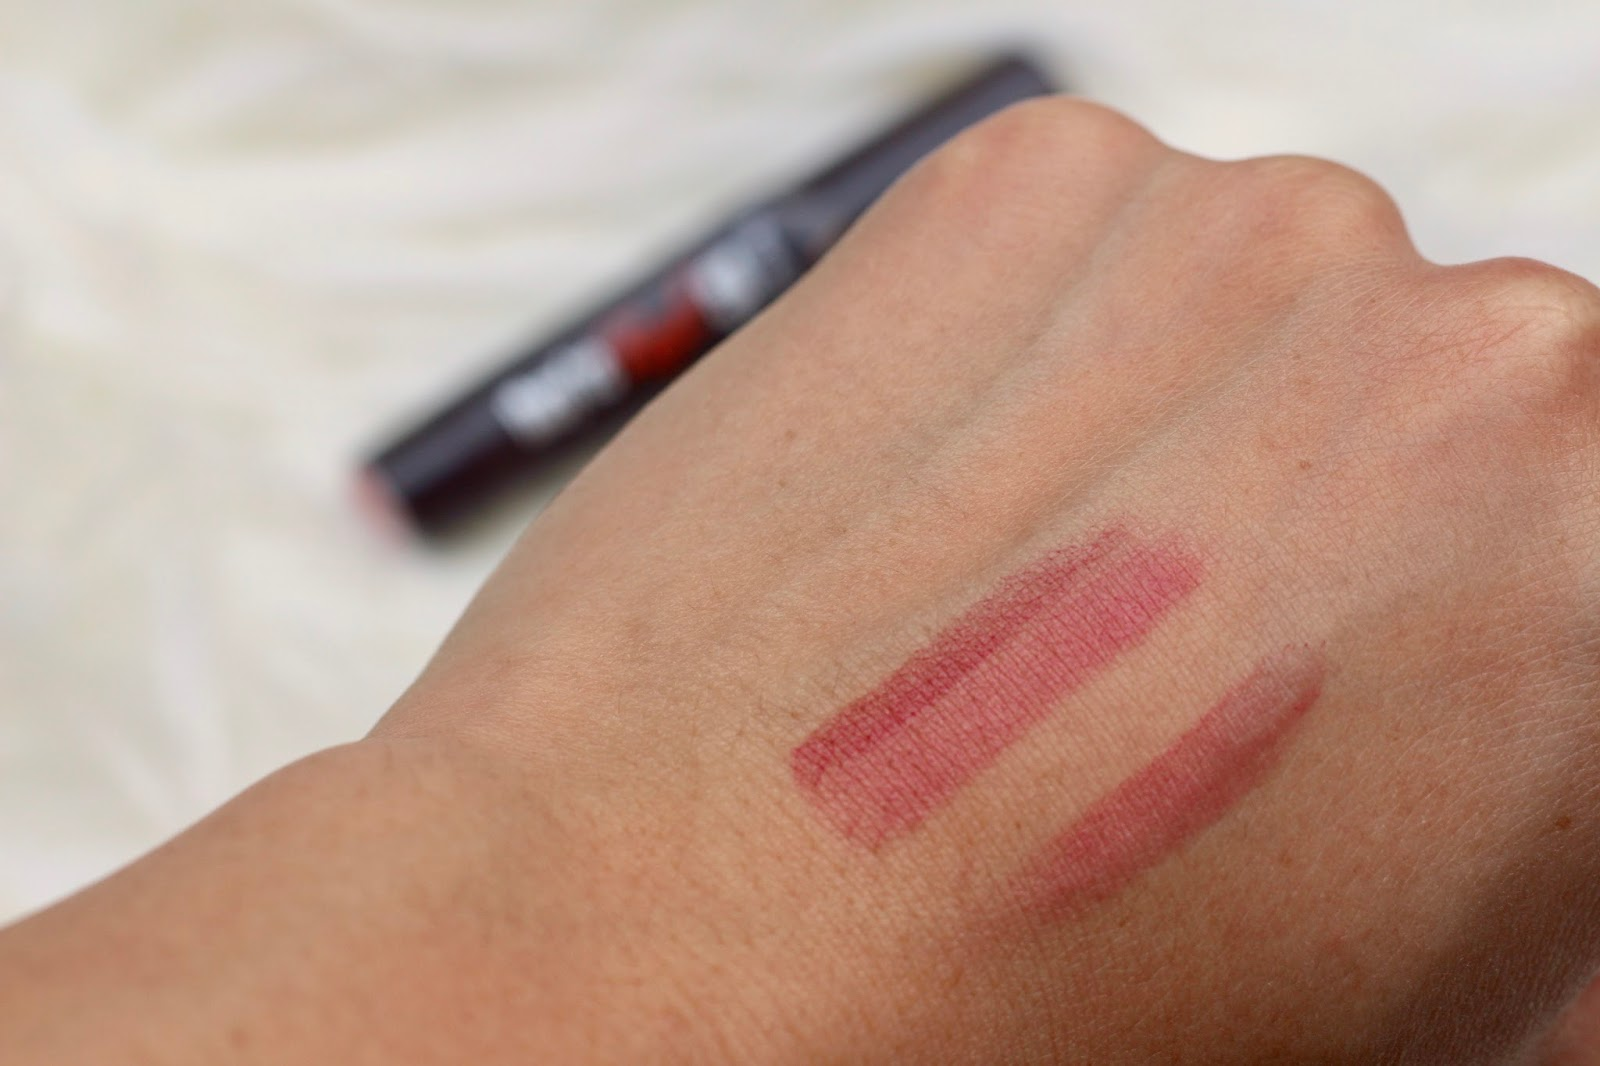 Benefit Cosmetics Double the Lip in Lusty Rose Swatch on hand